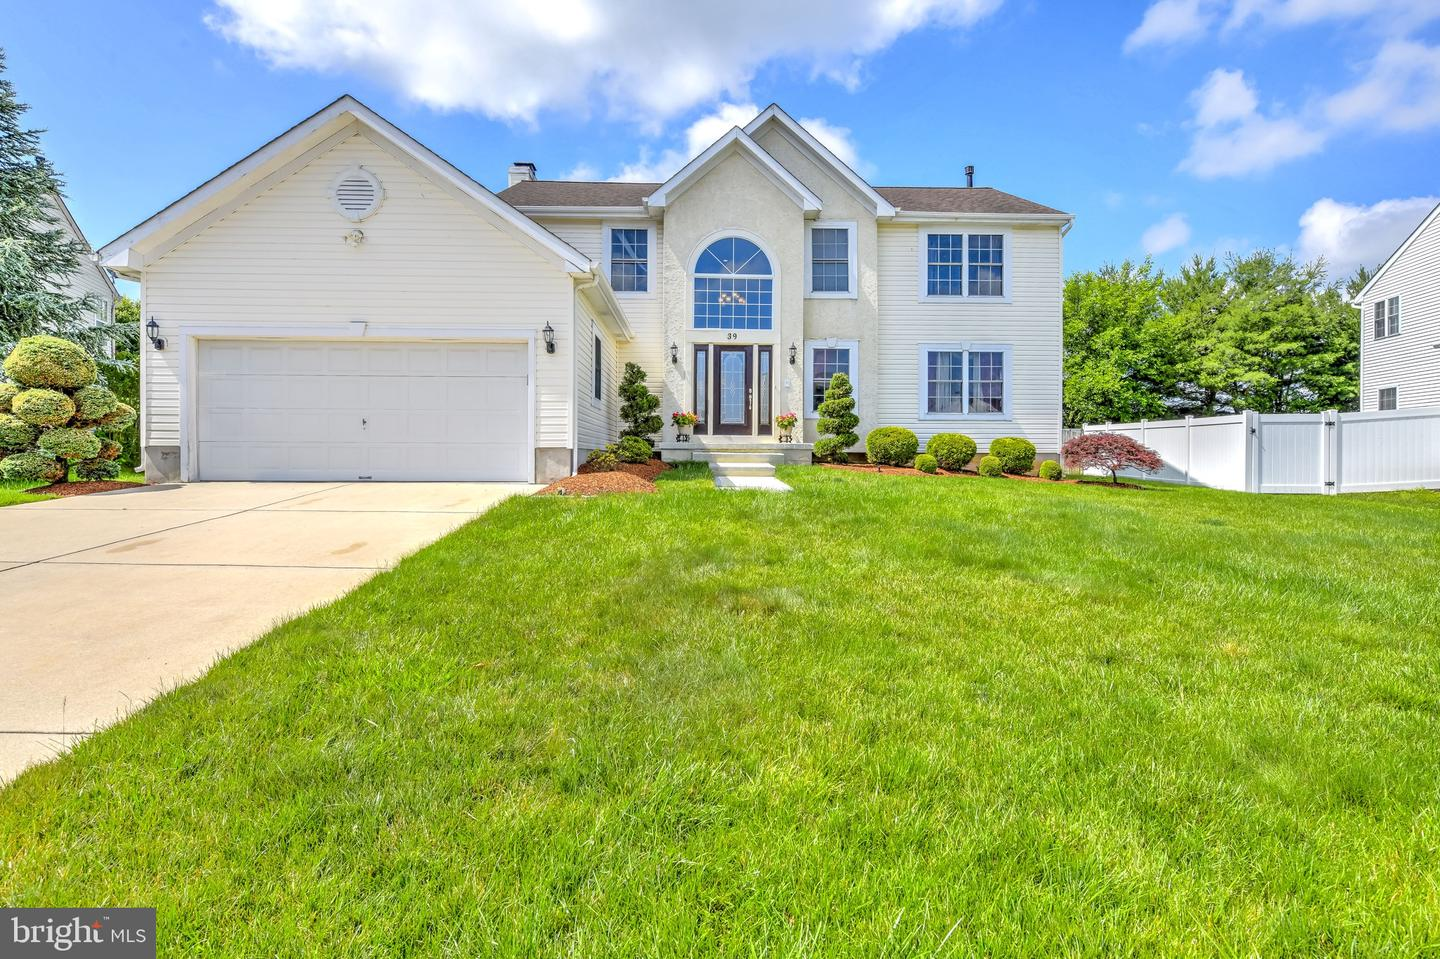 39 GRAYPEBBLE CIR, SICKLERVILLE, NJ 08081